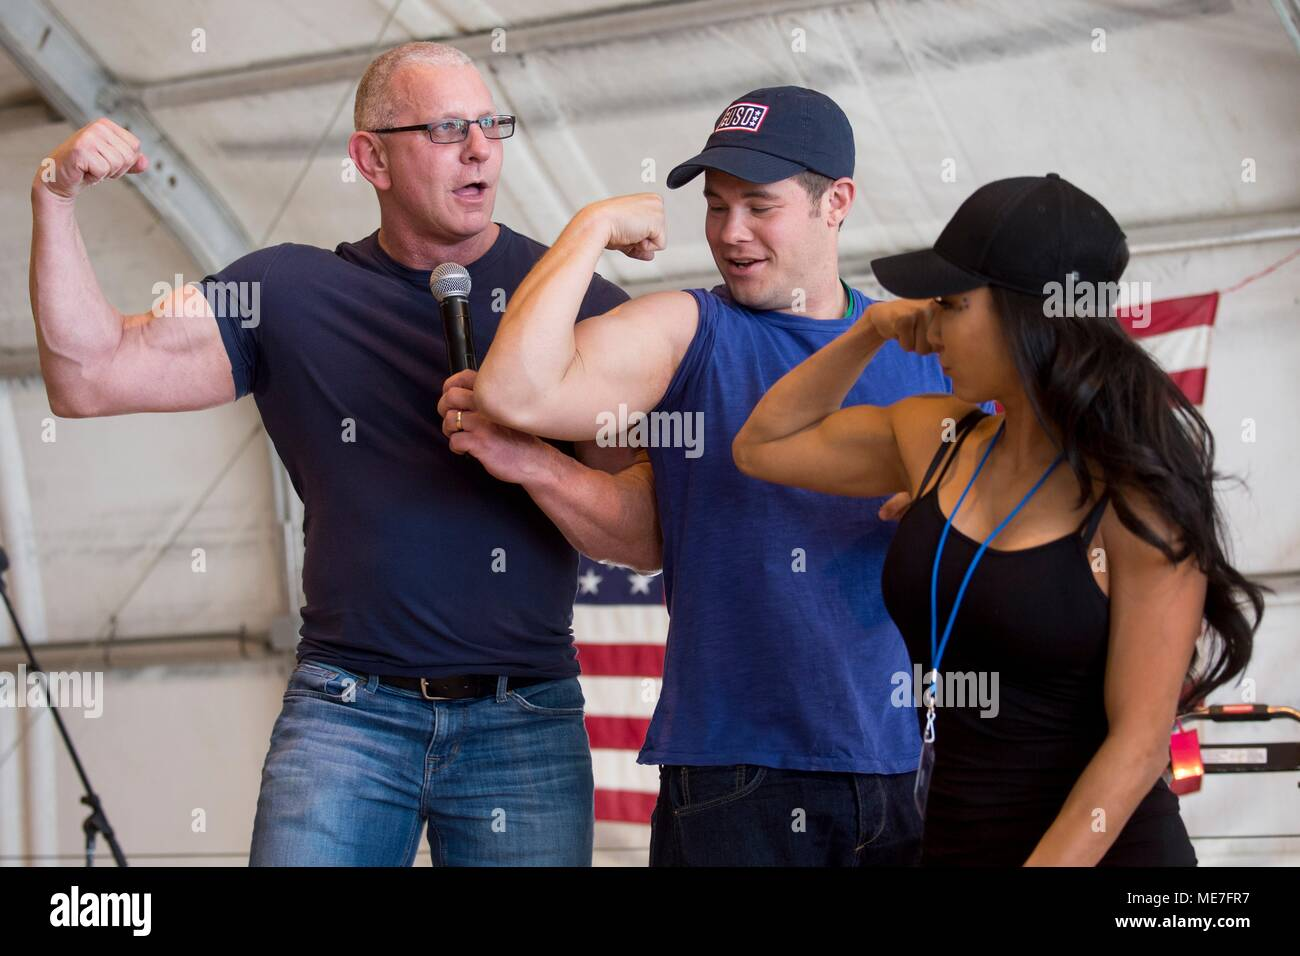 Robert Irvine Wife Wrestler